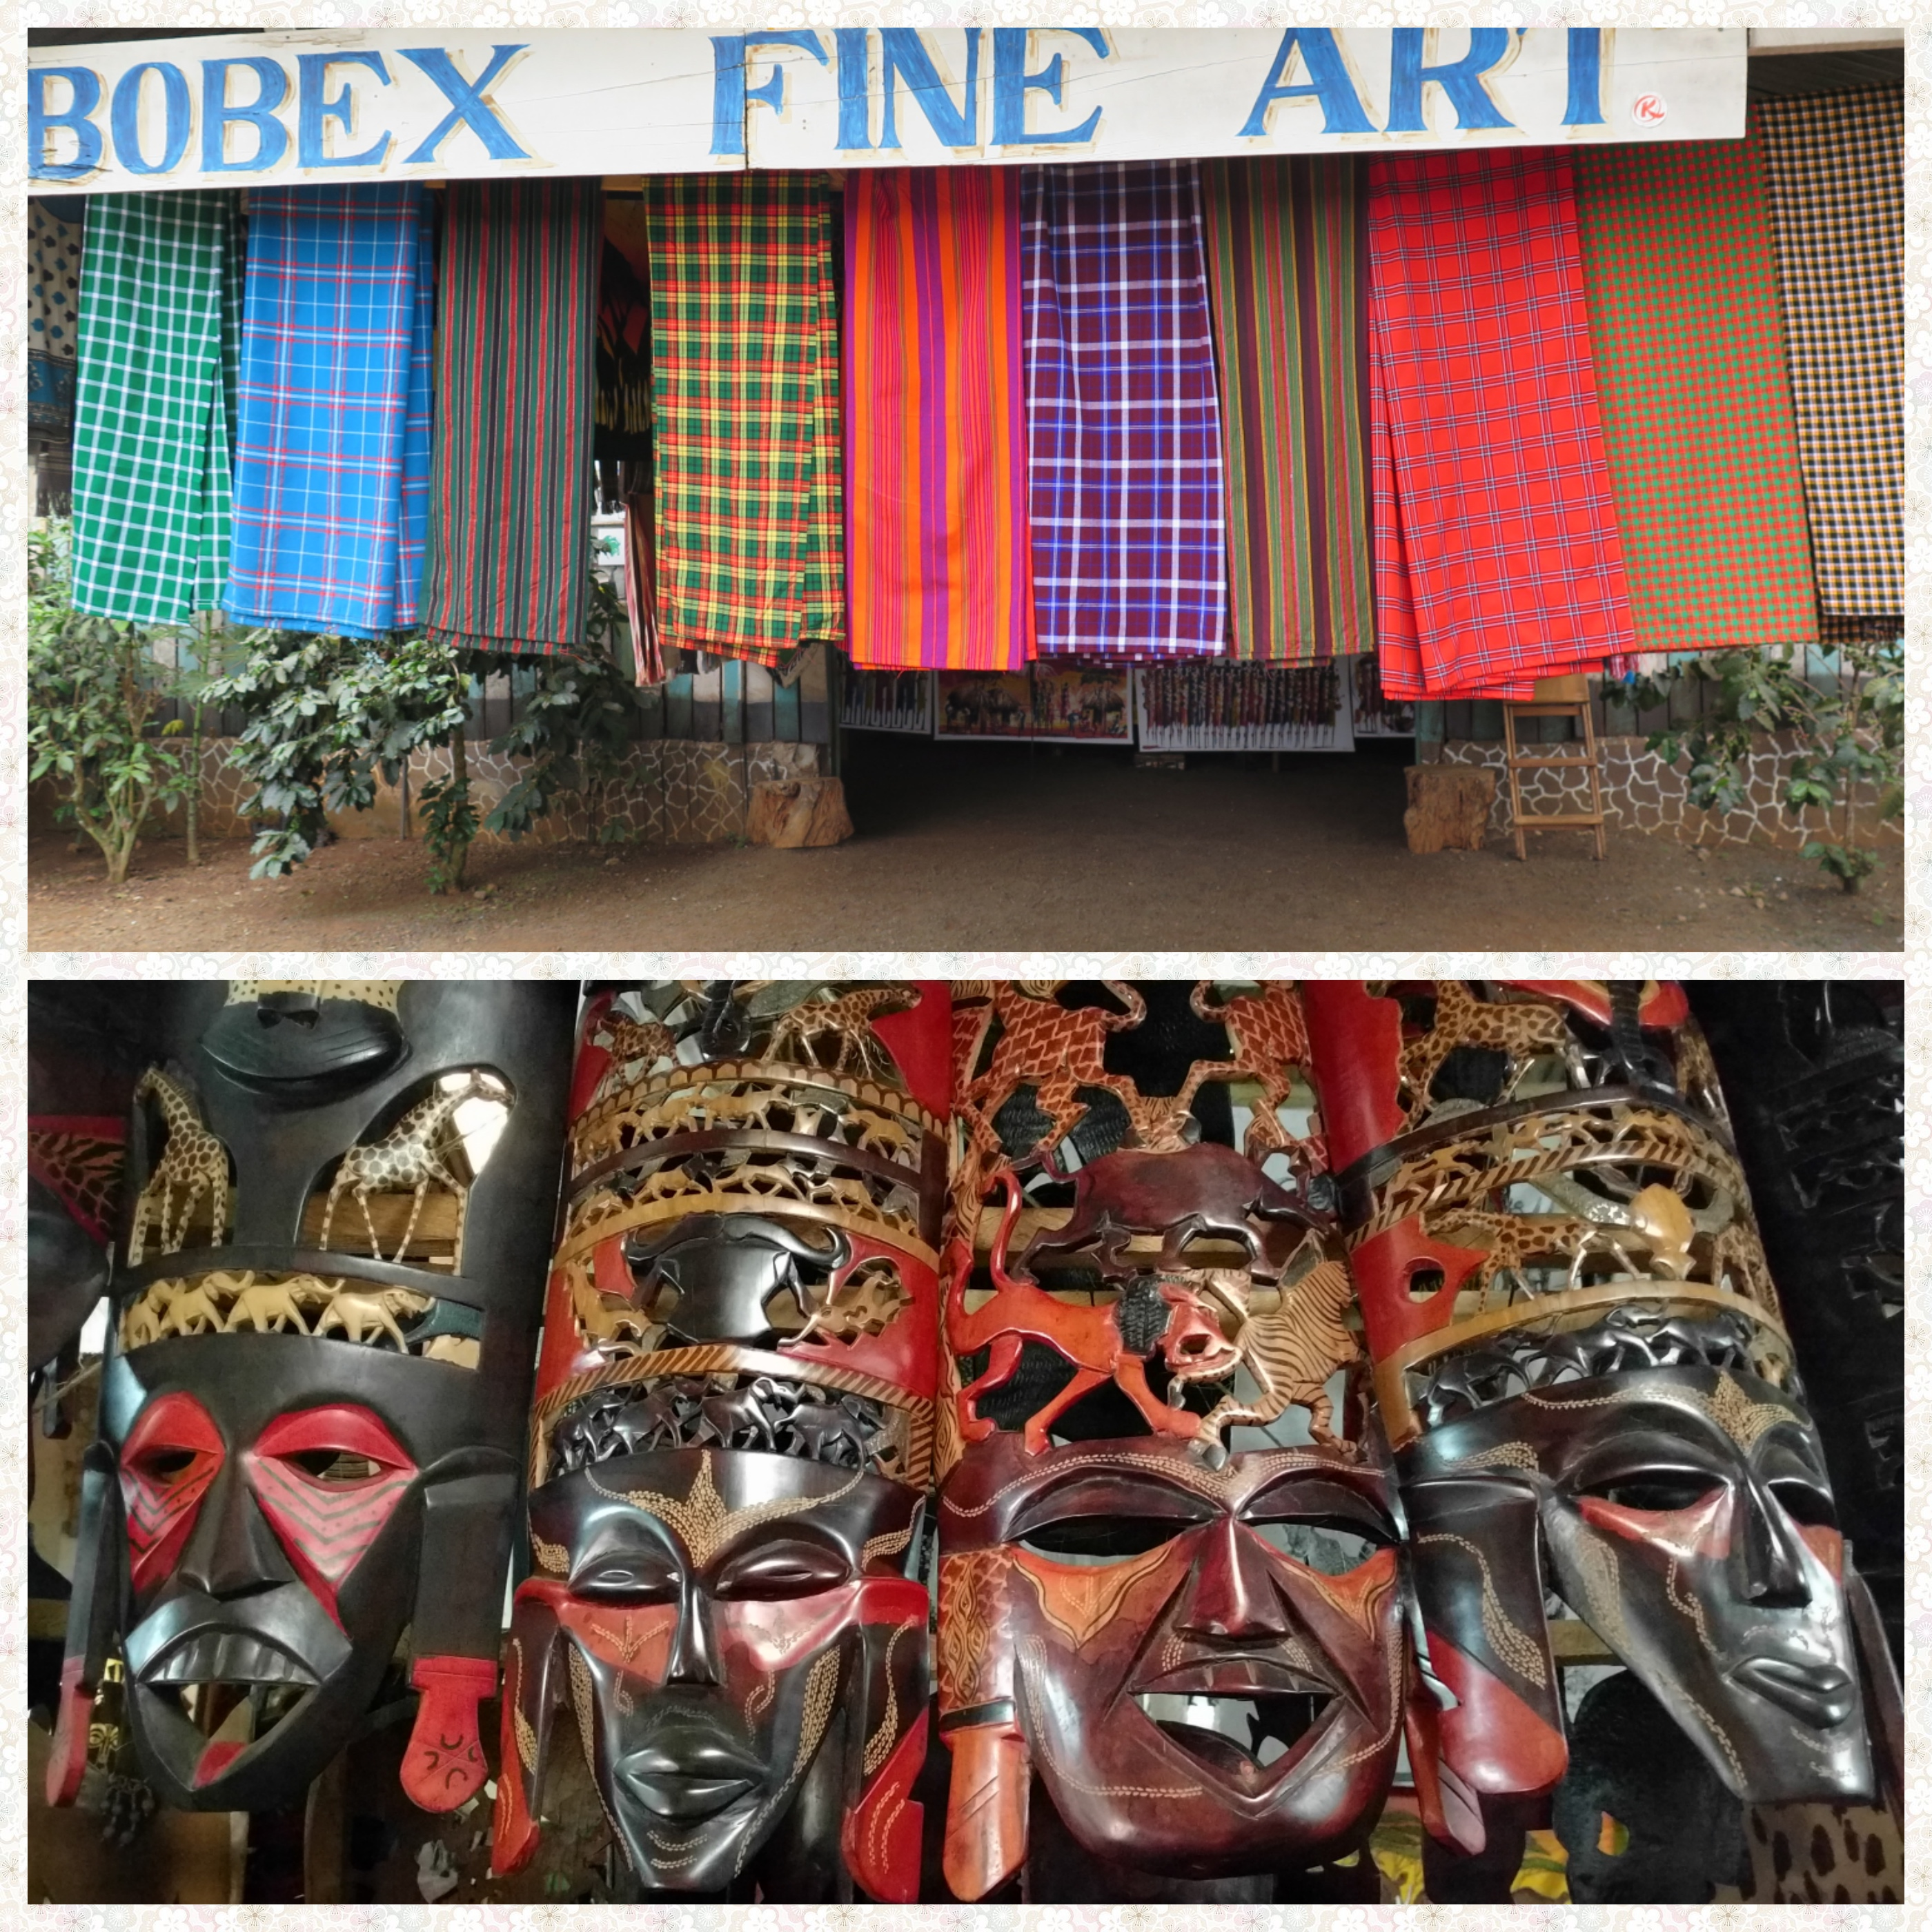 Shukas and Masks on highway curio shops